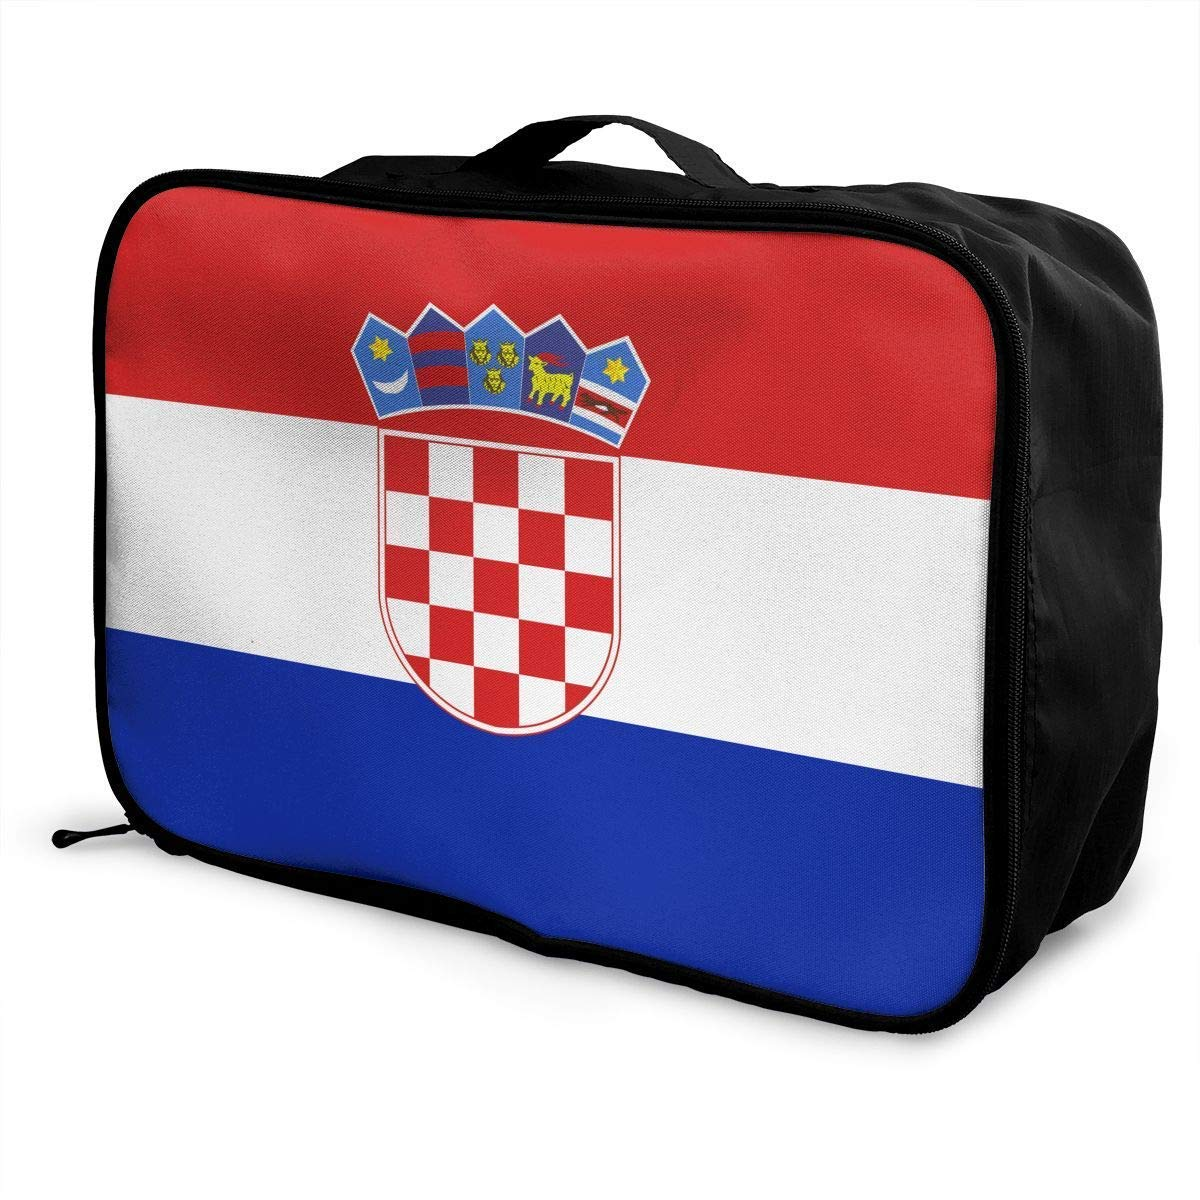 JTRVW Luggage Bags for Travel Portable Luggage Duffel Bag Croatia Flag Travel Bags Carry-on in Trolley Handle